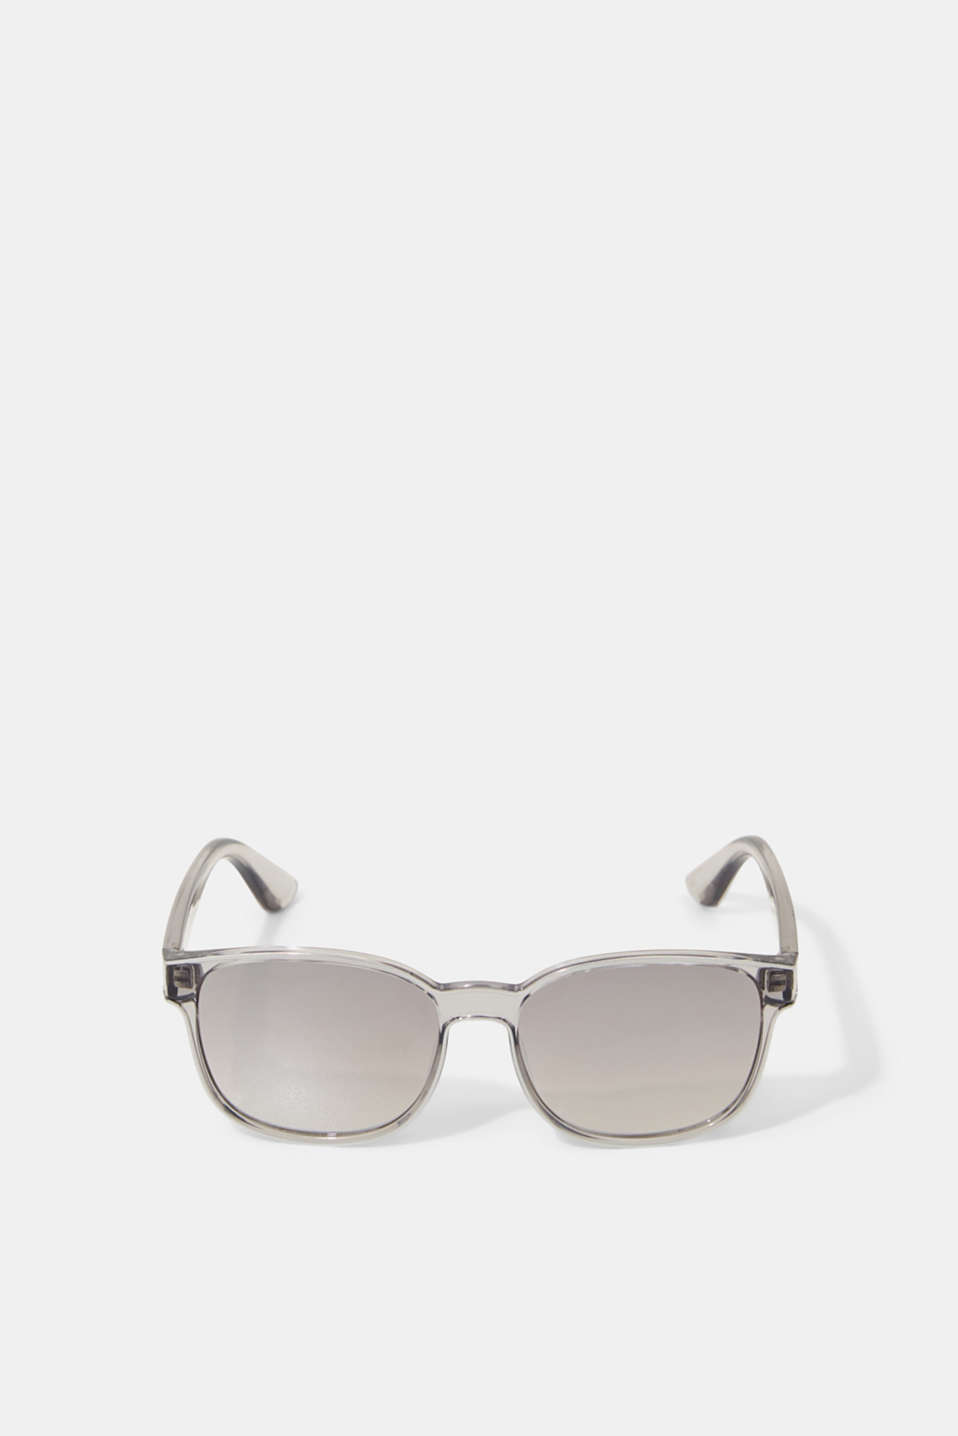 Esprit - Unisex sunglasses with mirrored lenses